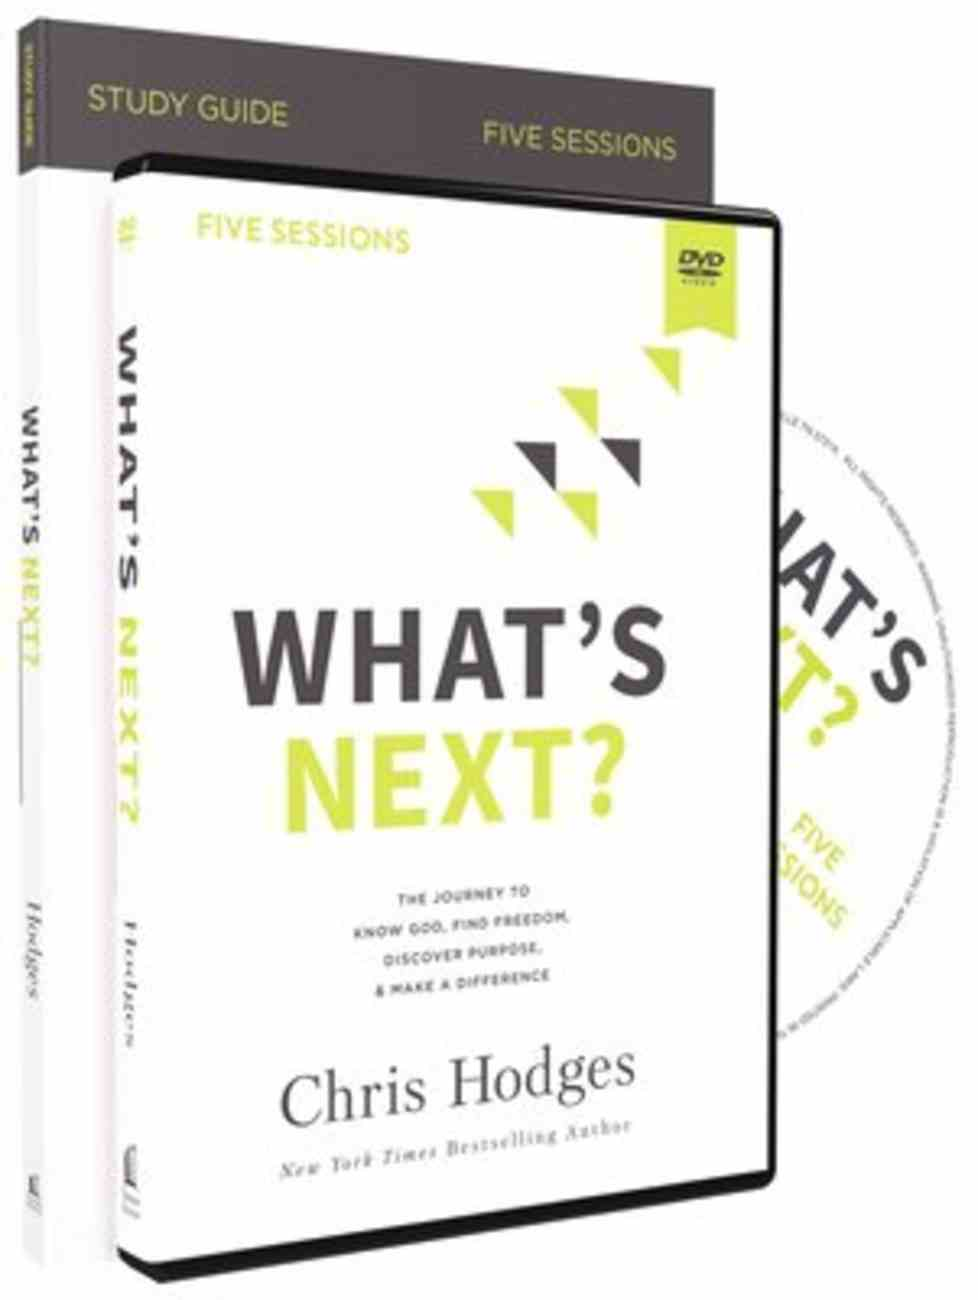 What's Next?: The Journey to Know God, Find Freedom, Discover Purpose, and Make a Difference (Study Guide With Dvd) Pack